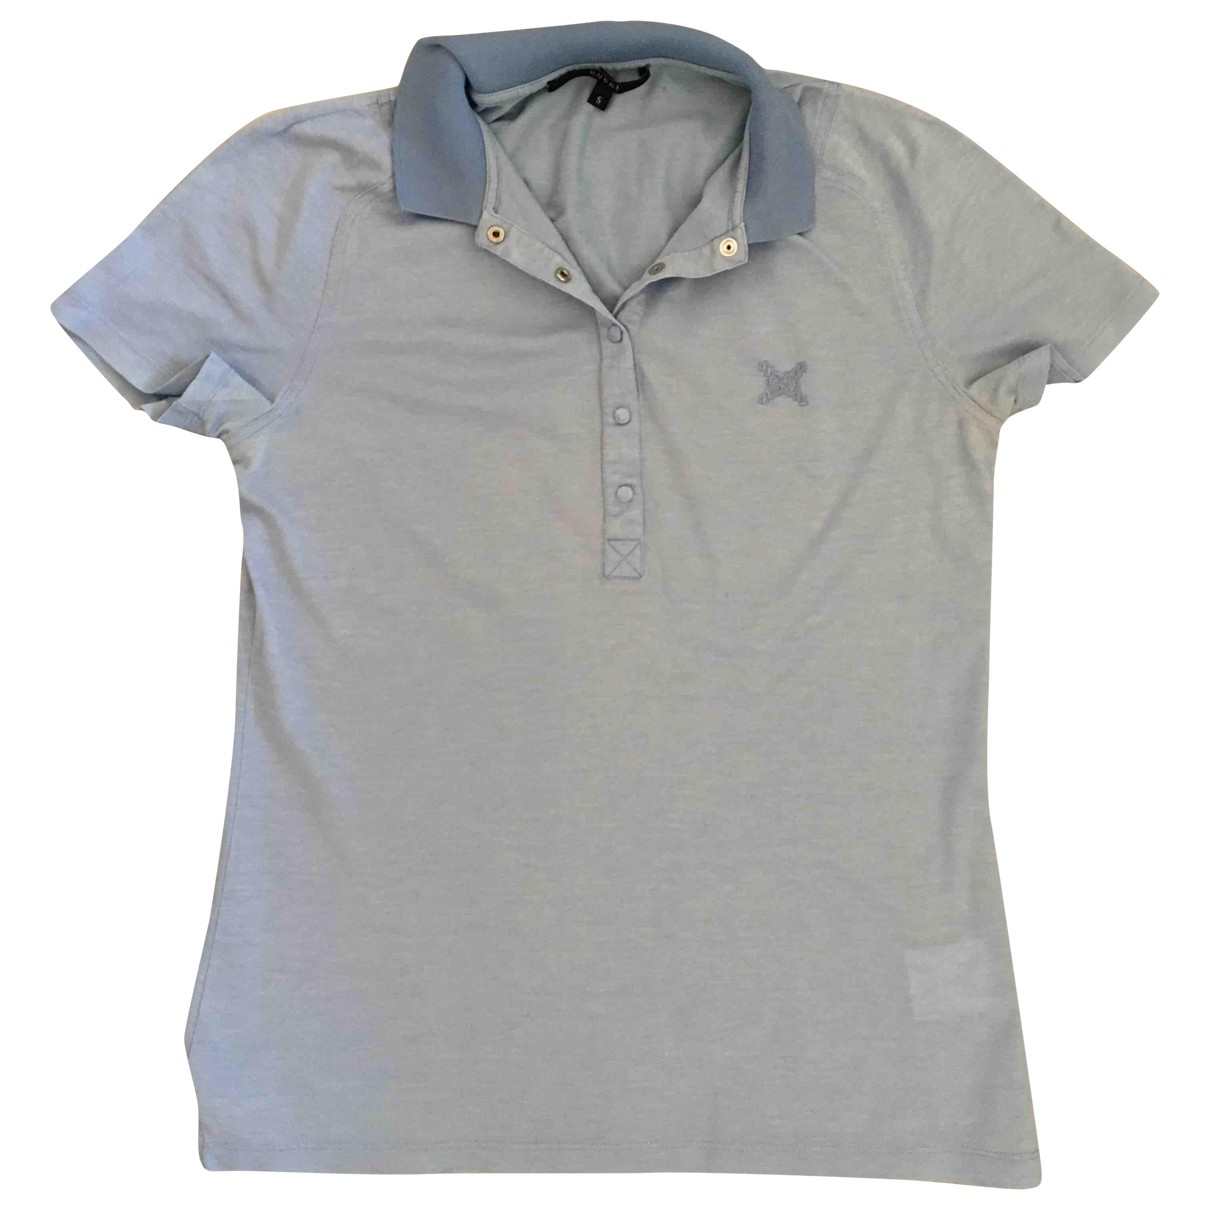 Gucci \N Cotton  top for Women S International